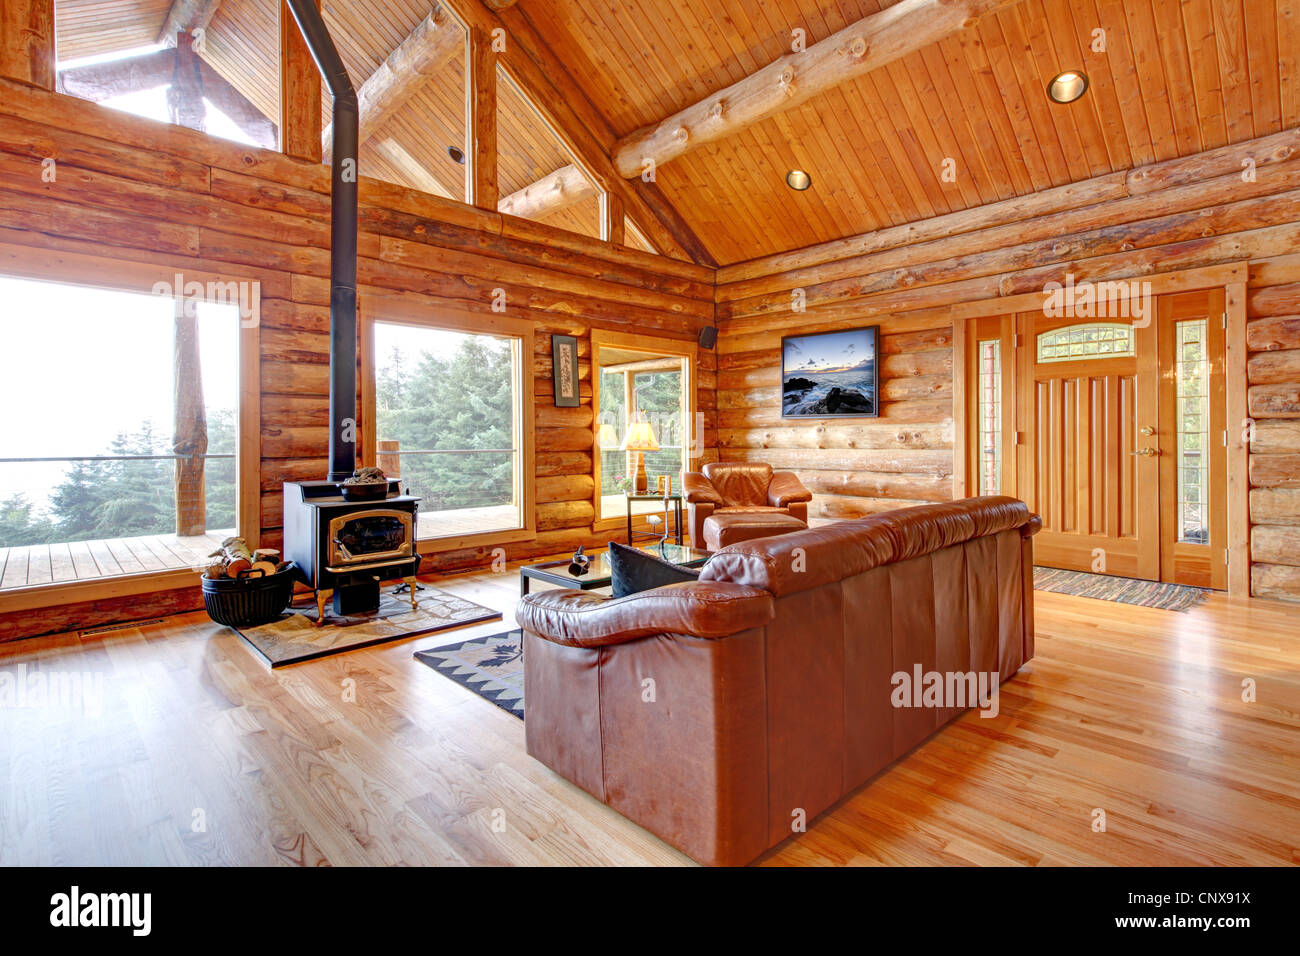 gro en luxus blockhaus haus wohnzimmer mit gro en fenstern stockfoto bild 47906374 alamy. Black Bedroom Furniture Sets. Home Design Ideas